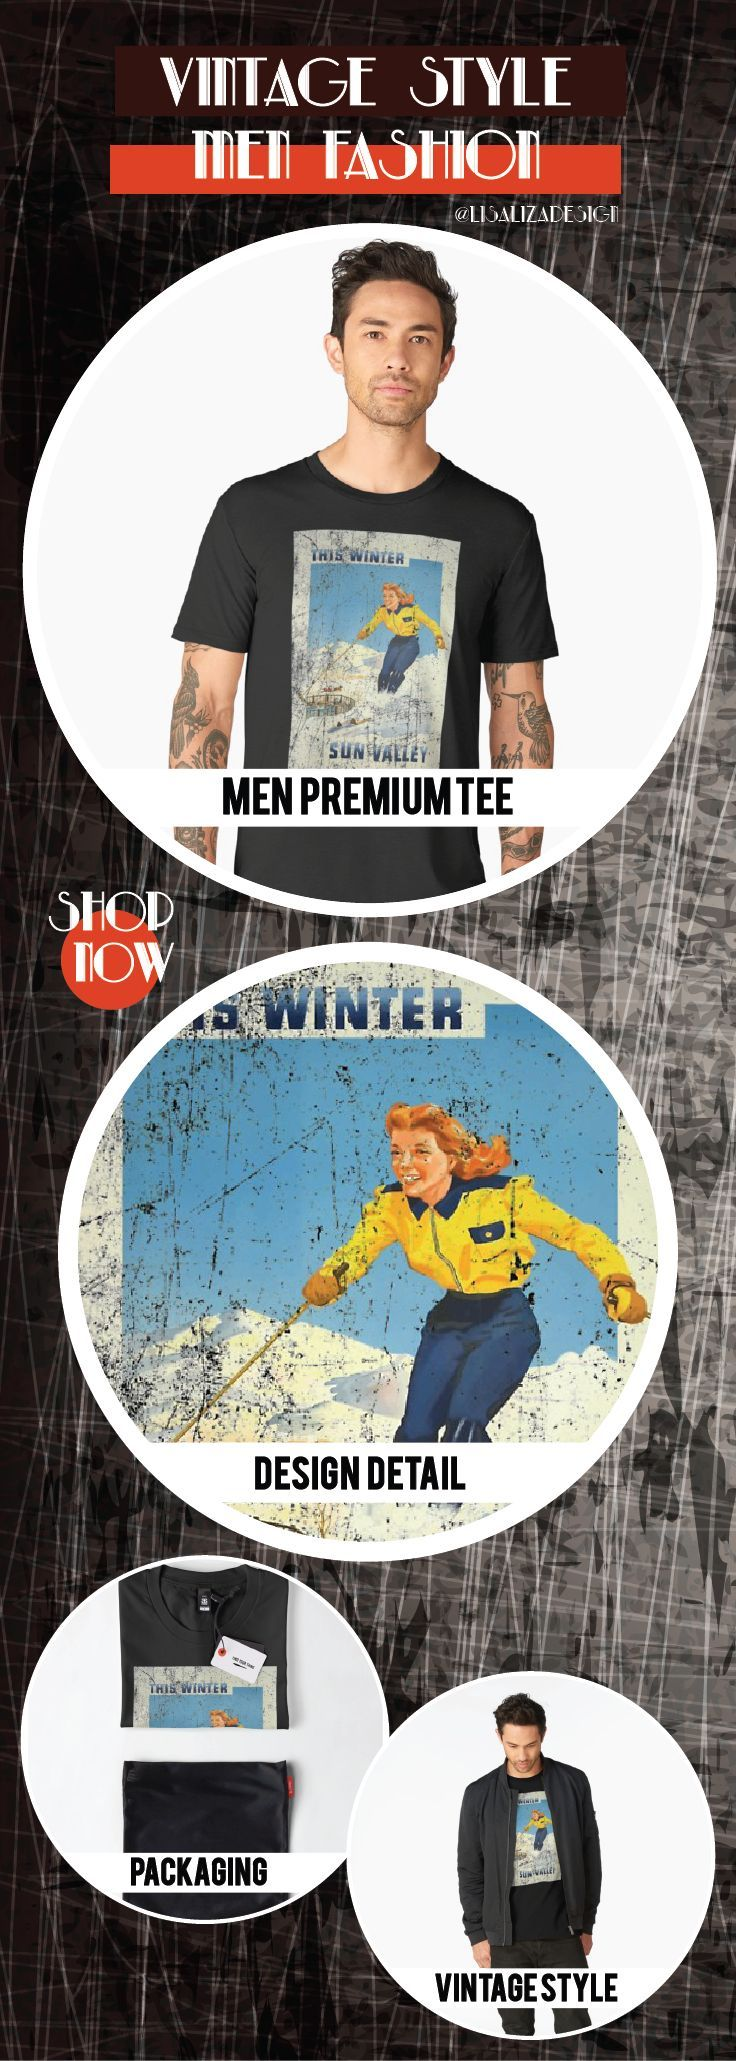 Men�s Premium T-Shirt  Vintage Travel Poster, Aged and Weathered - Sun Valley Idaho   Design inspired by vintage travel and advertisements posters from the late 19th century.  (Also available in mugs, shirts, duvet covers, acrylic , phone cases,   kid fas